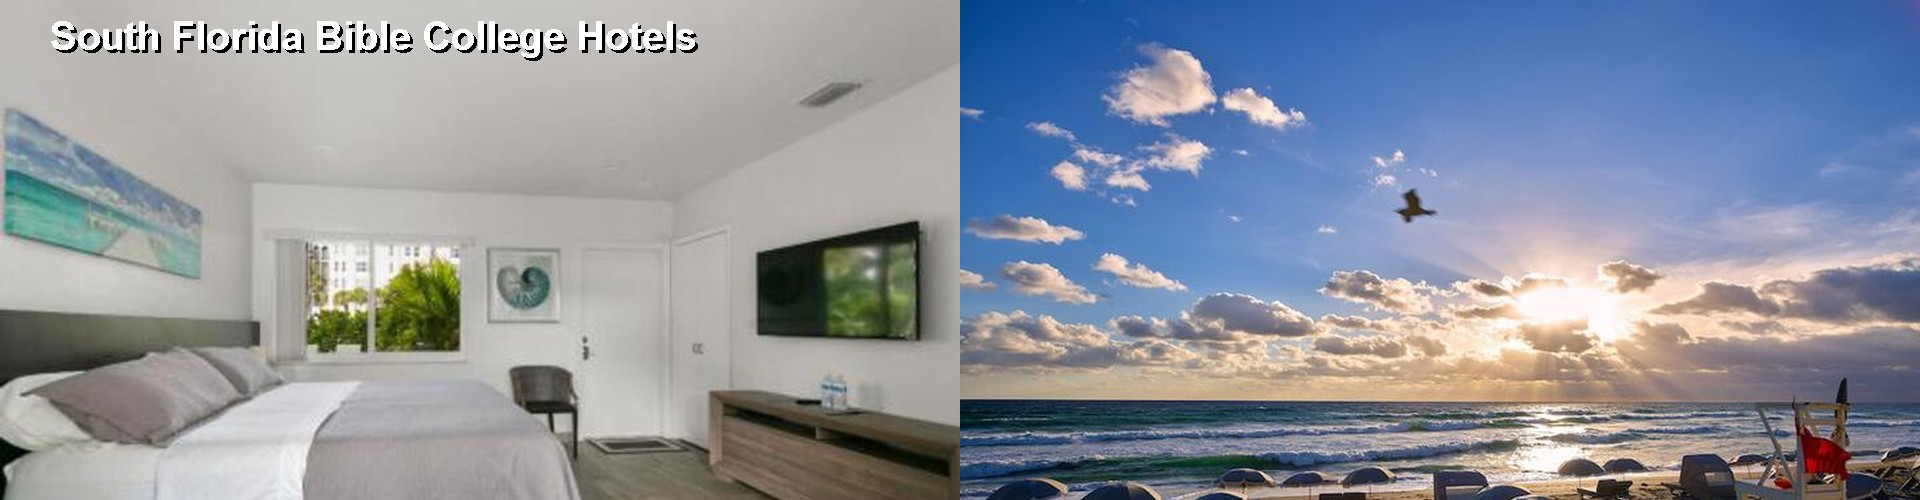 5 Best Hotels near South Florida Bible College